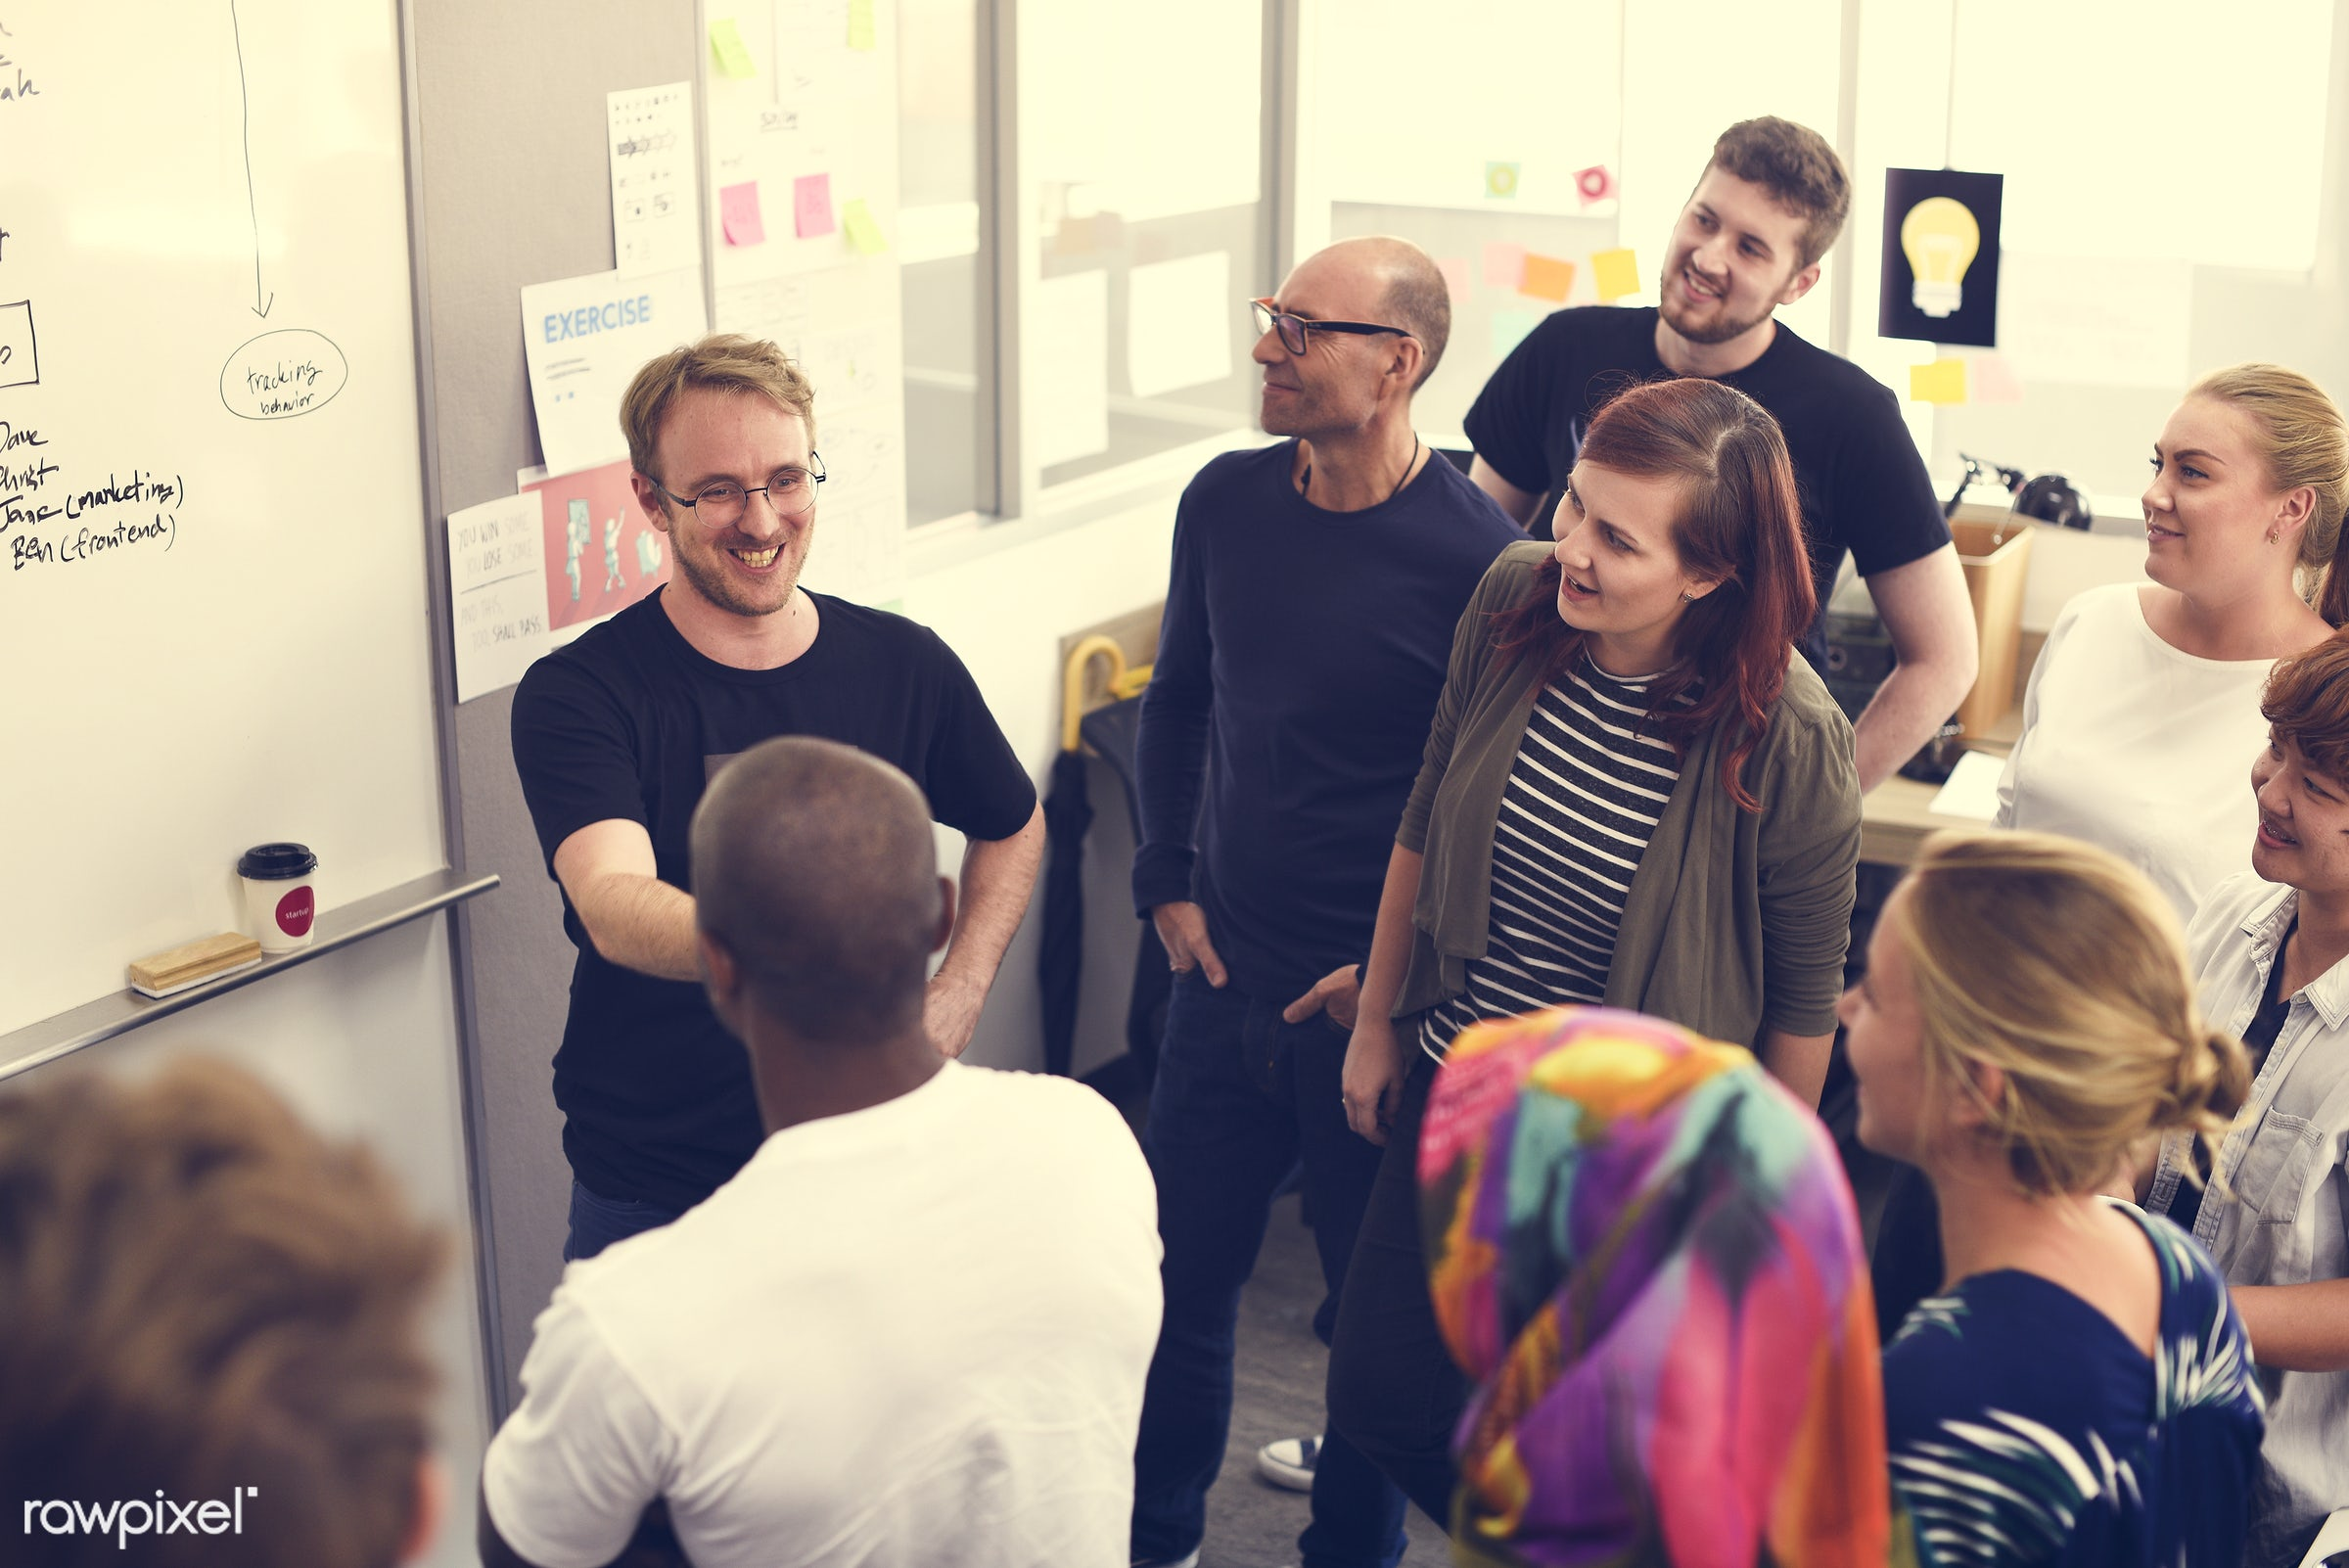 Group of diverse people attending startup business course - attend, brainstorm, business, businesspeople, casual, caucasian...